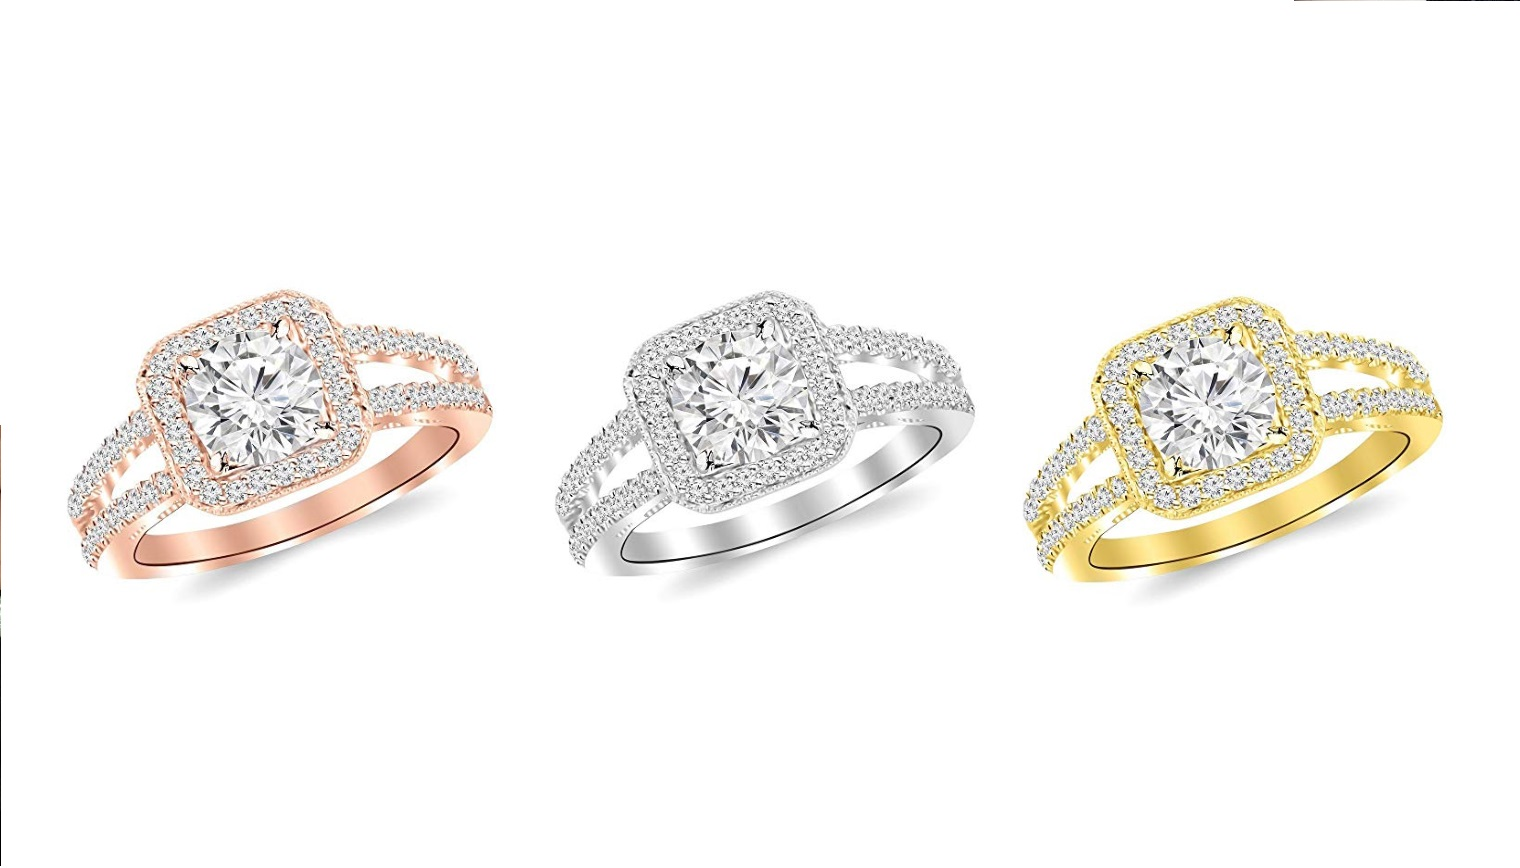 Top Wedding Ring Trends 2020 for Women